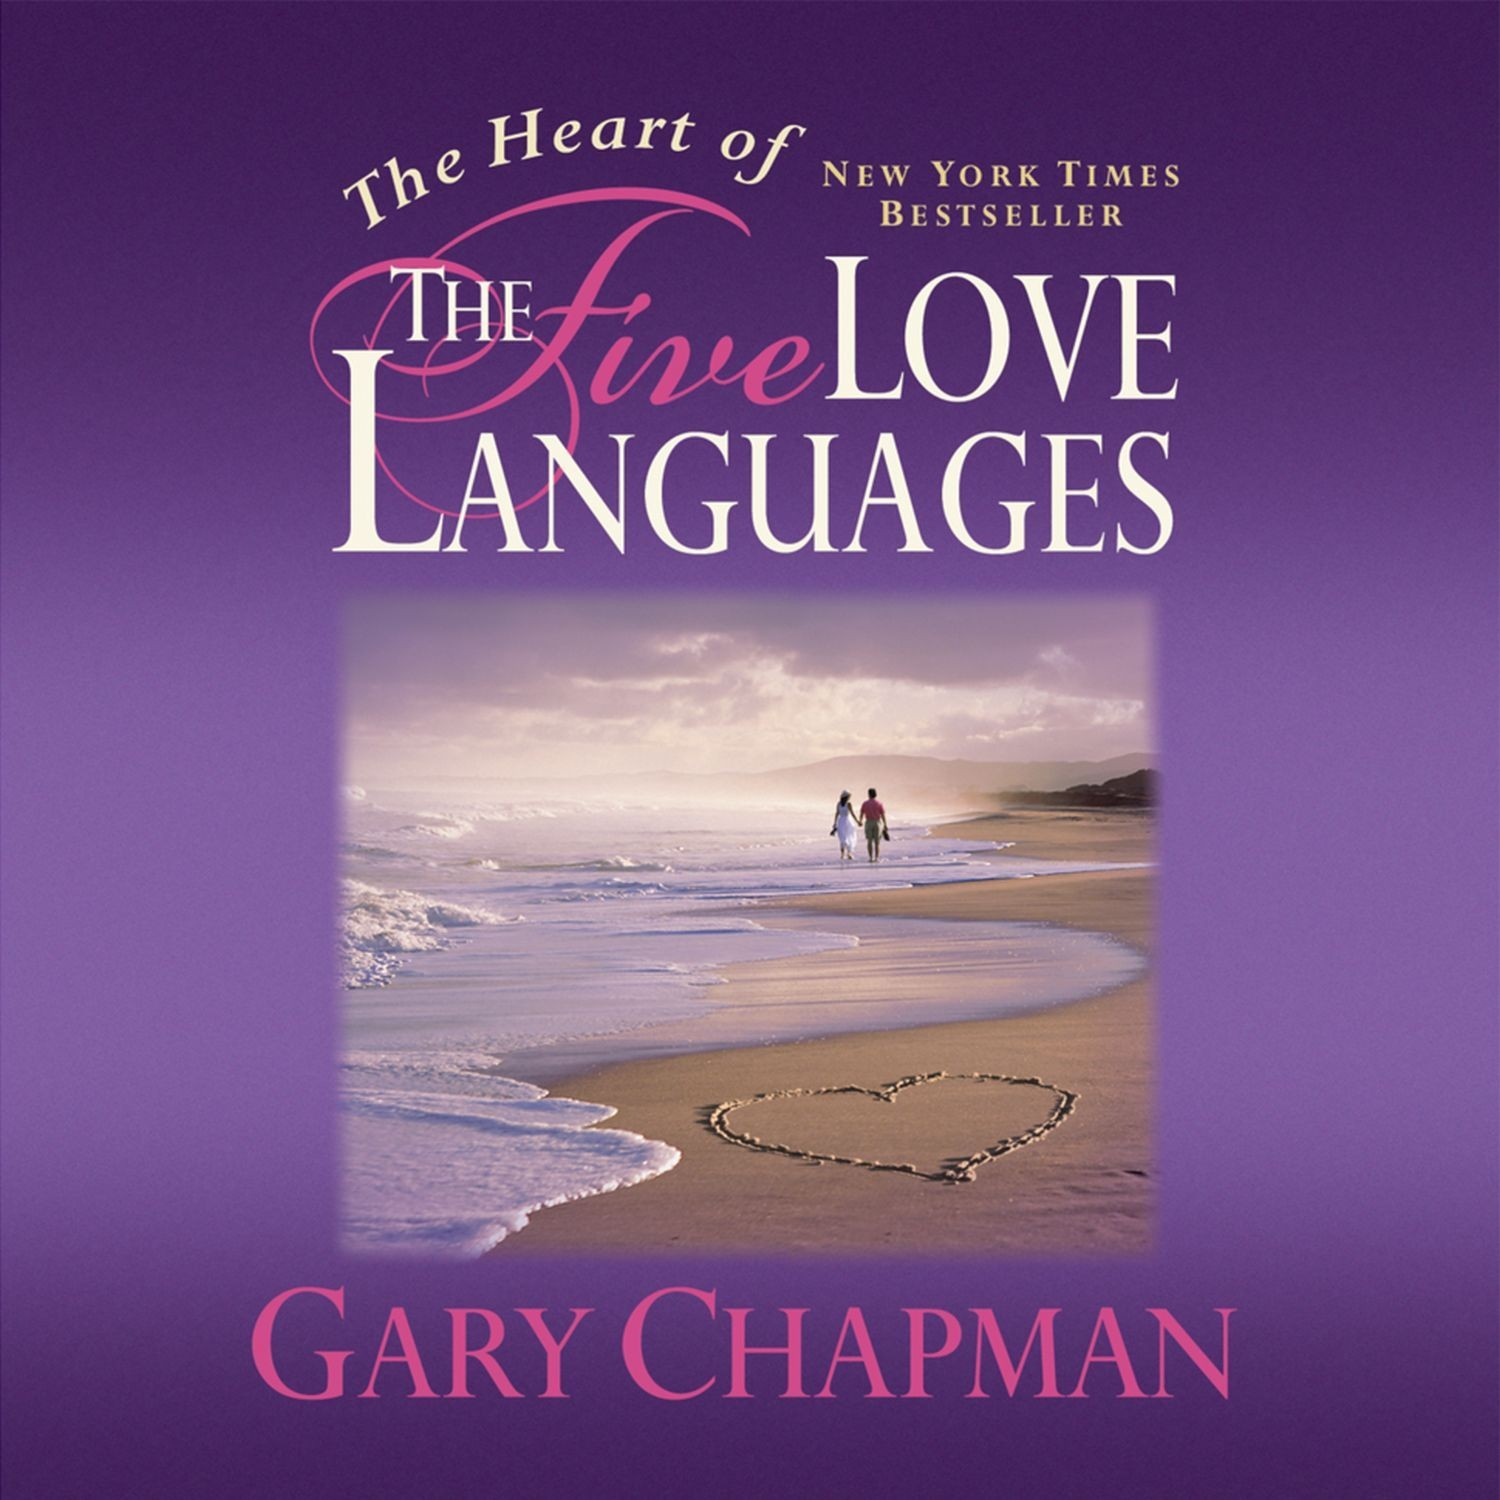 Printable The Heart of the Five Love Languages Audiobook Cover Art